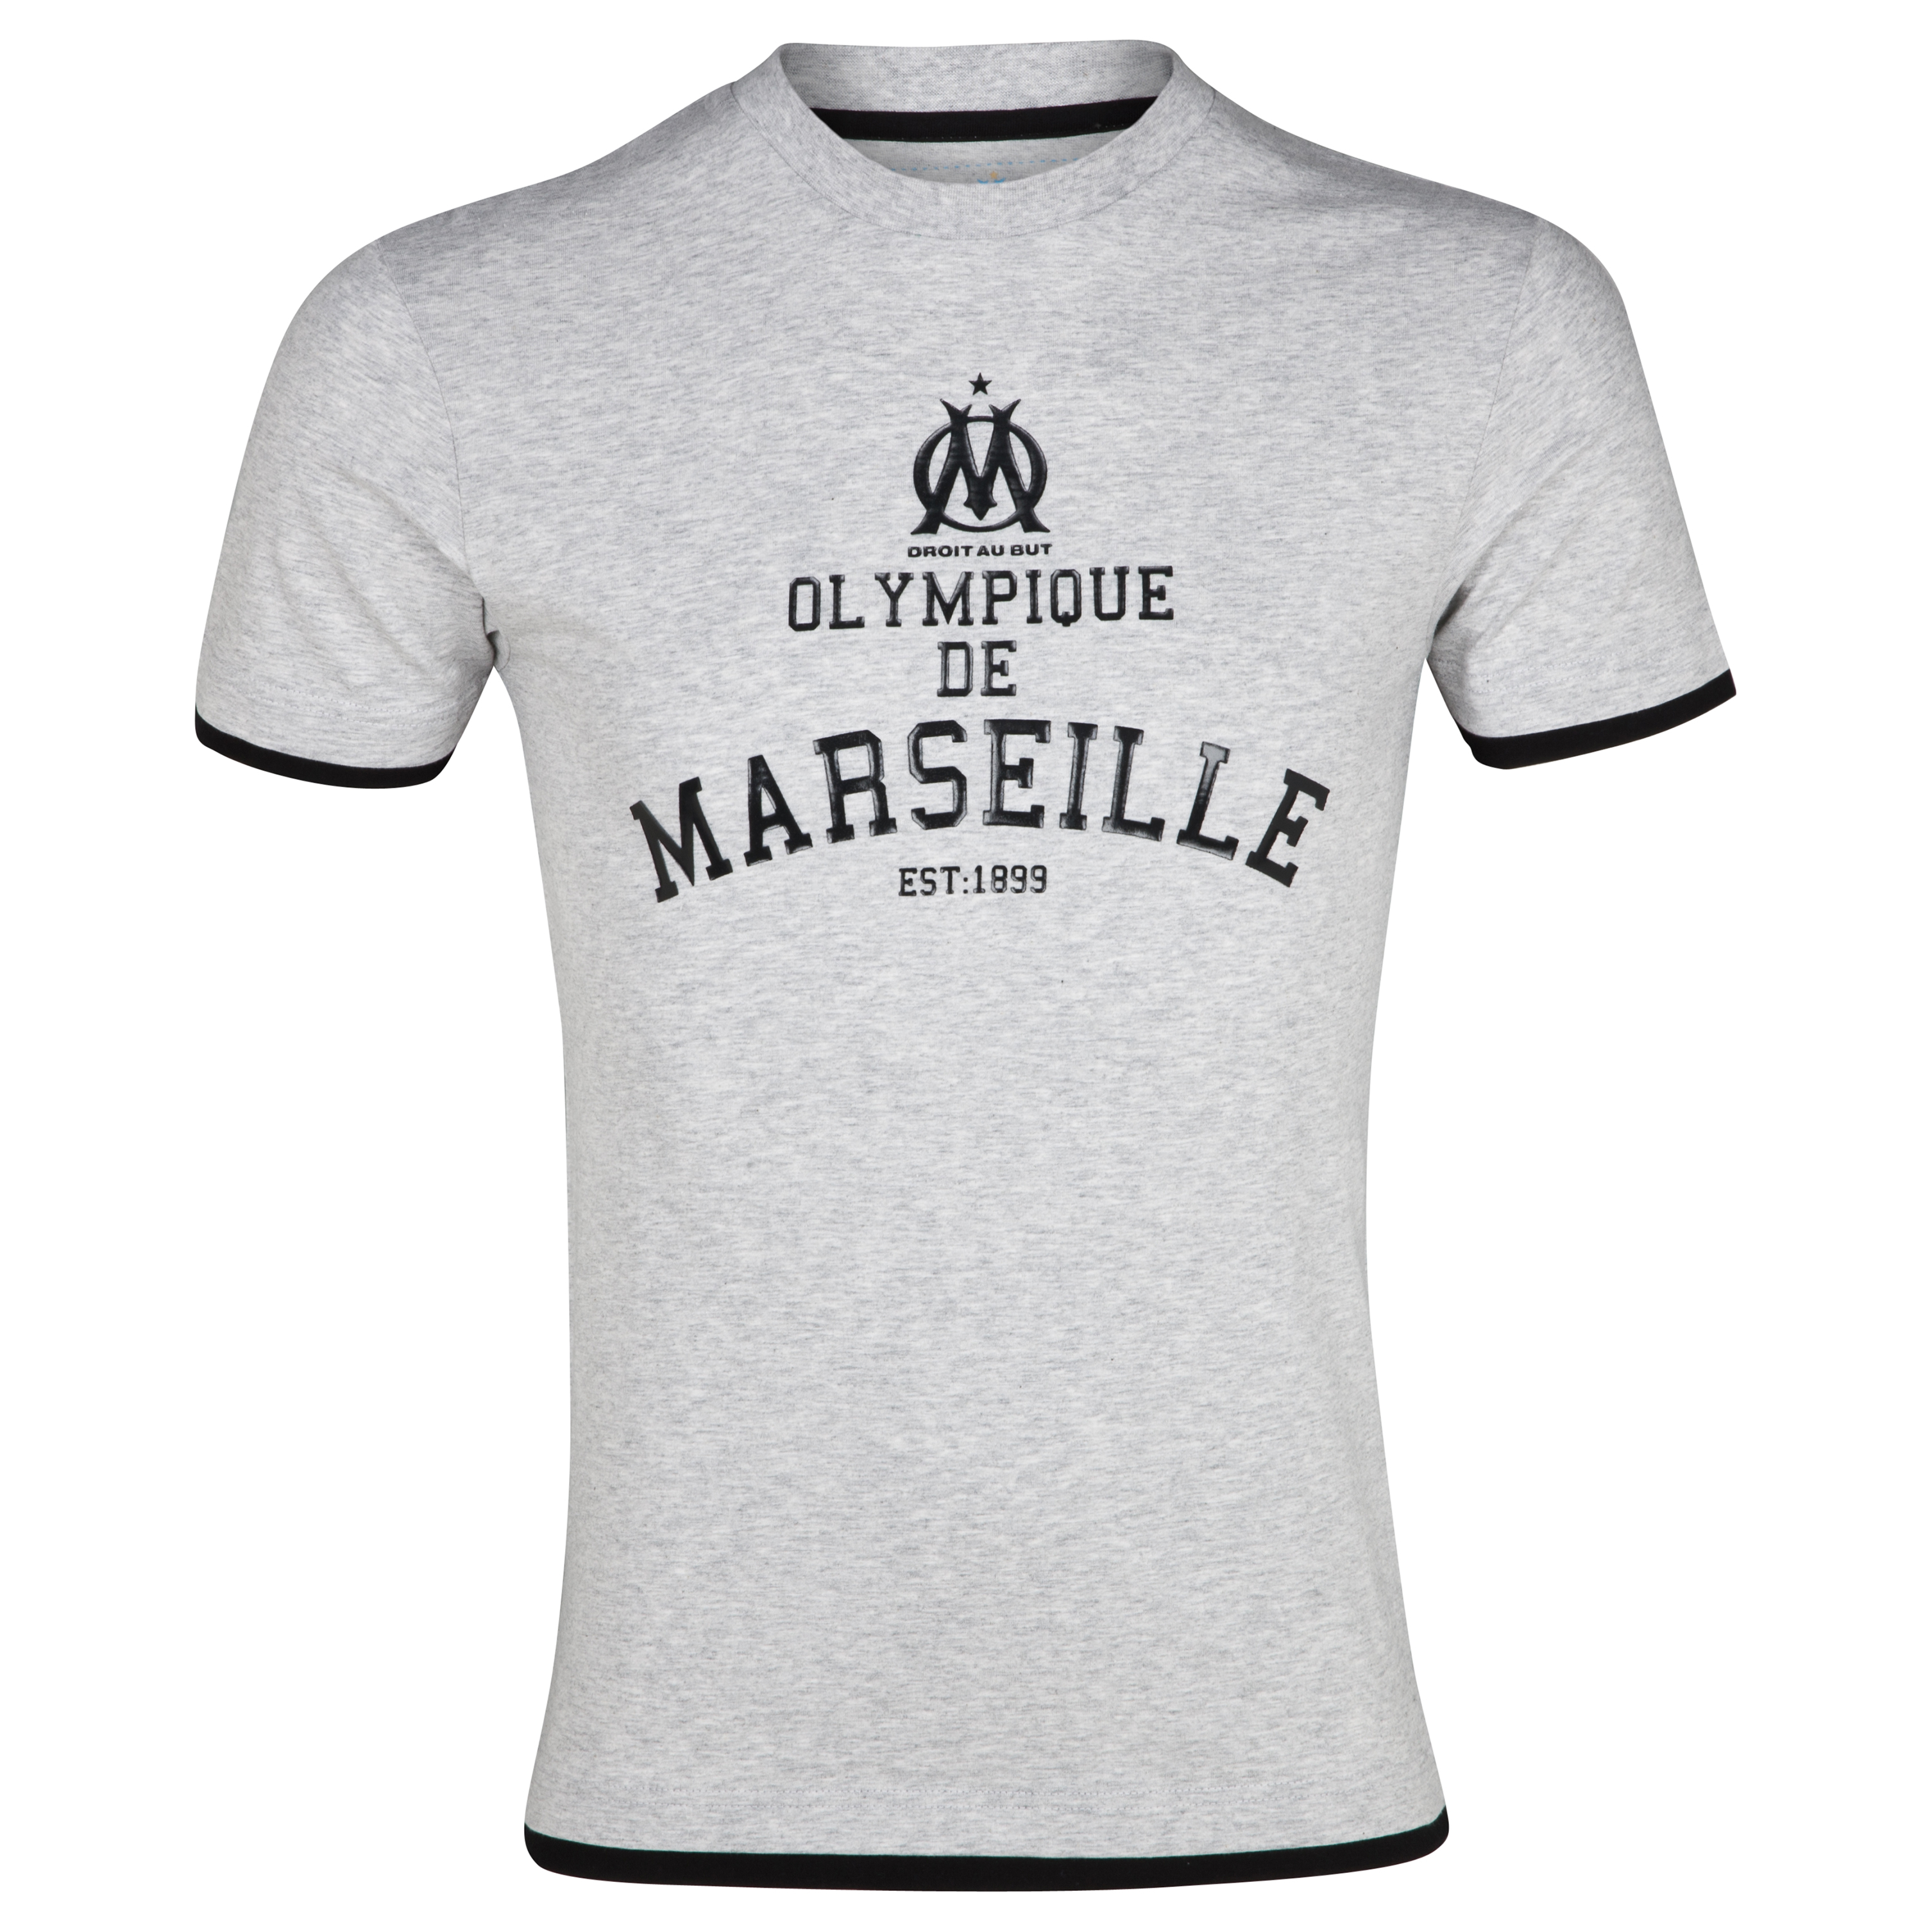 T-shirt ras du cou Athletic Olympique de Marseille